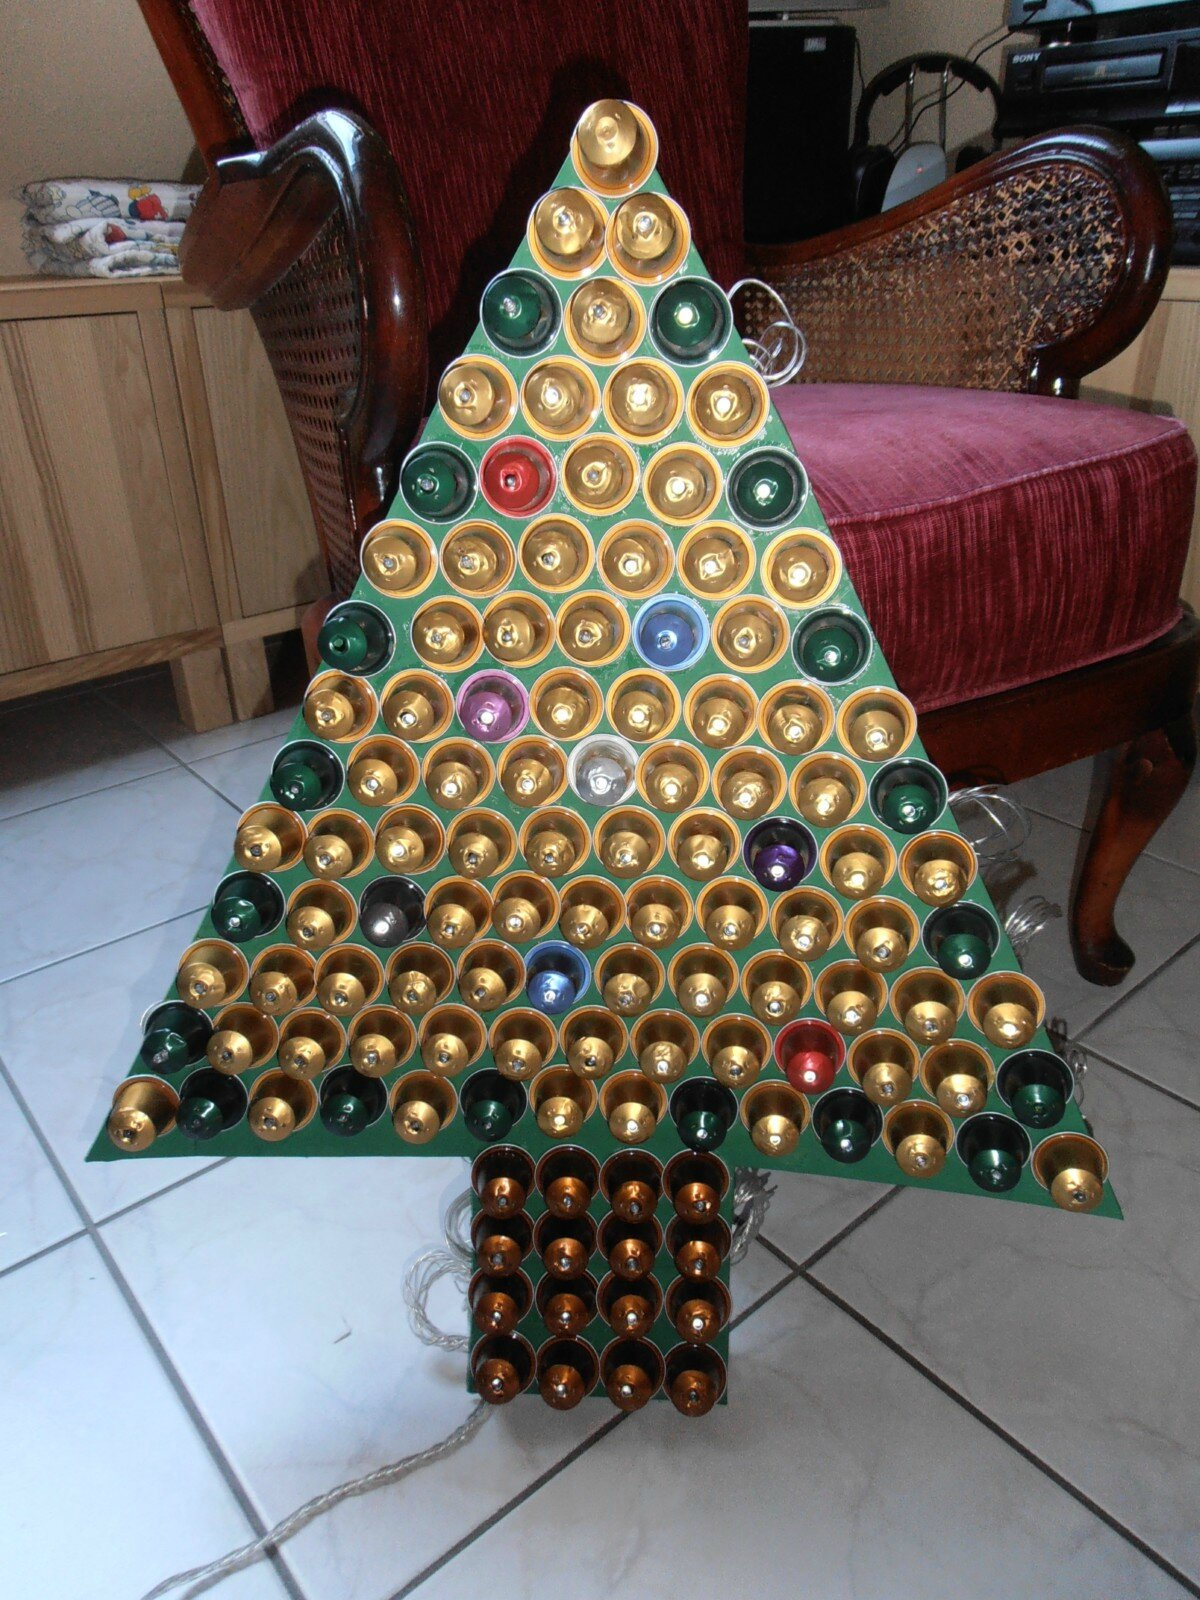 Top Sapin de Noël en capsules de Nespresso - Brico-déco-couture and co TD06